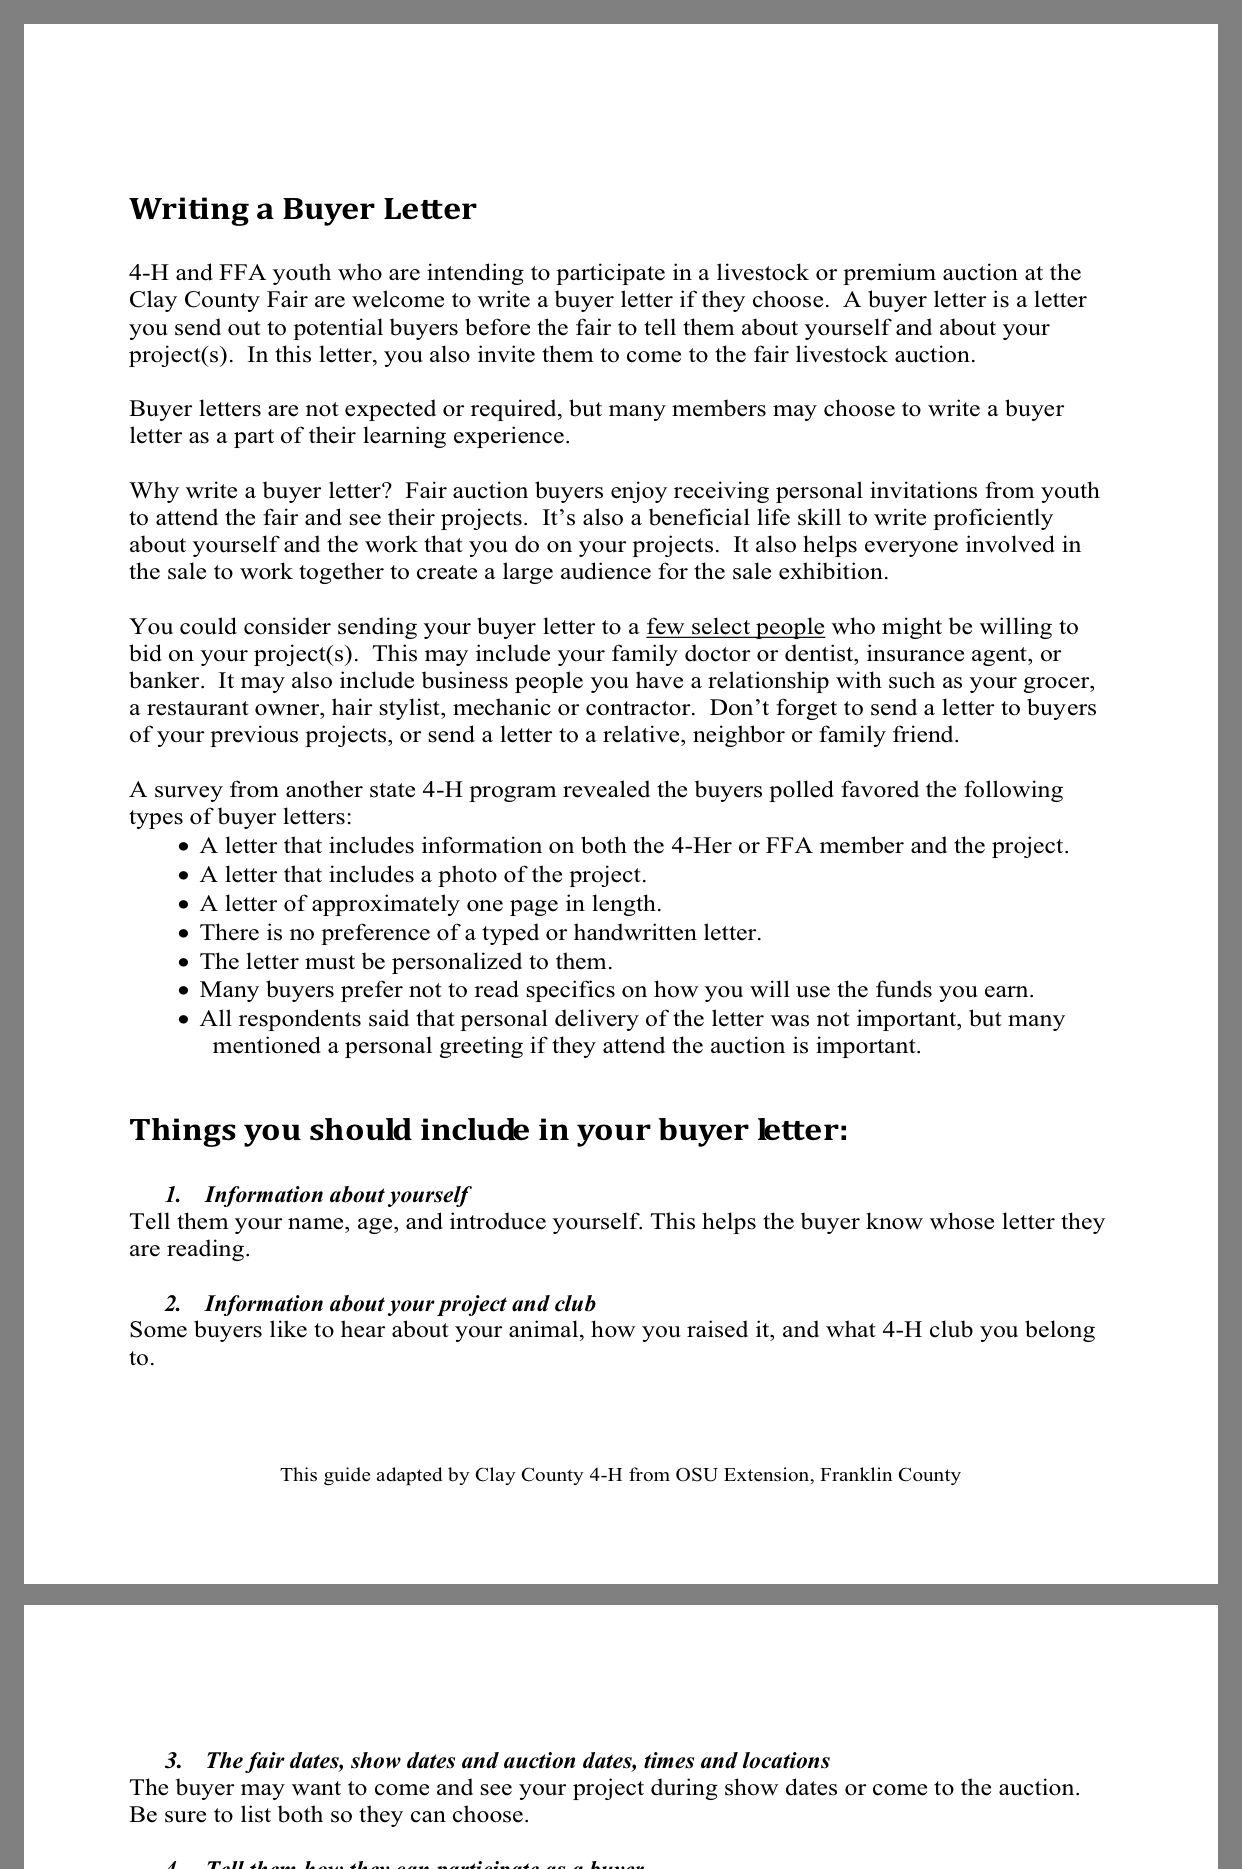 4 h buyer letter template  Pin by Caitlyn Hanover on Buyer Letters | 10 h, Lettering, Ffa